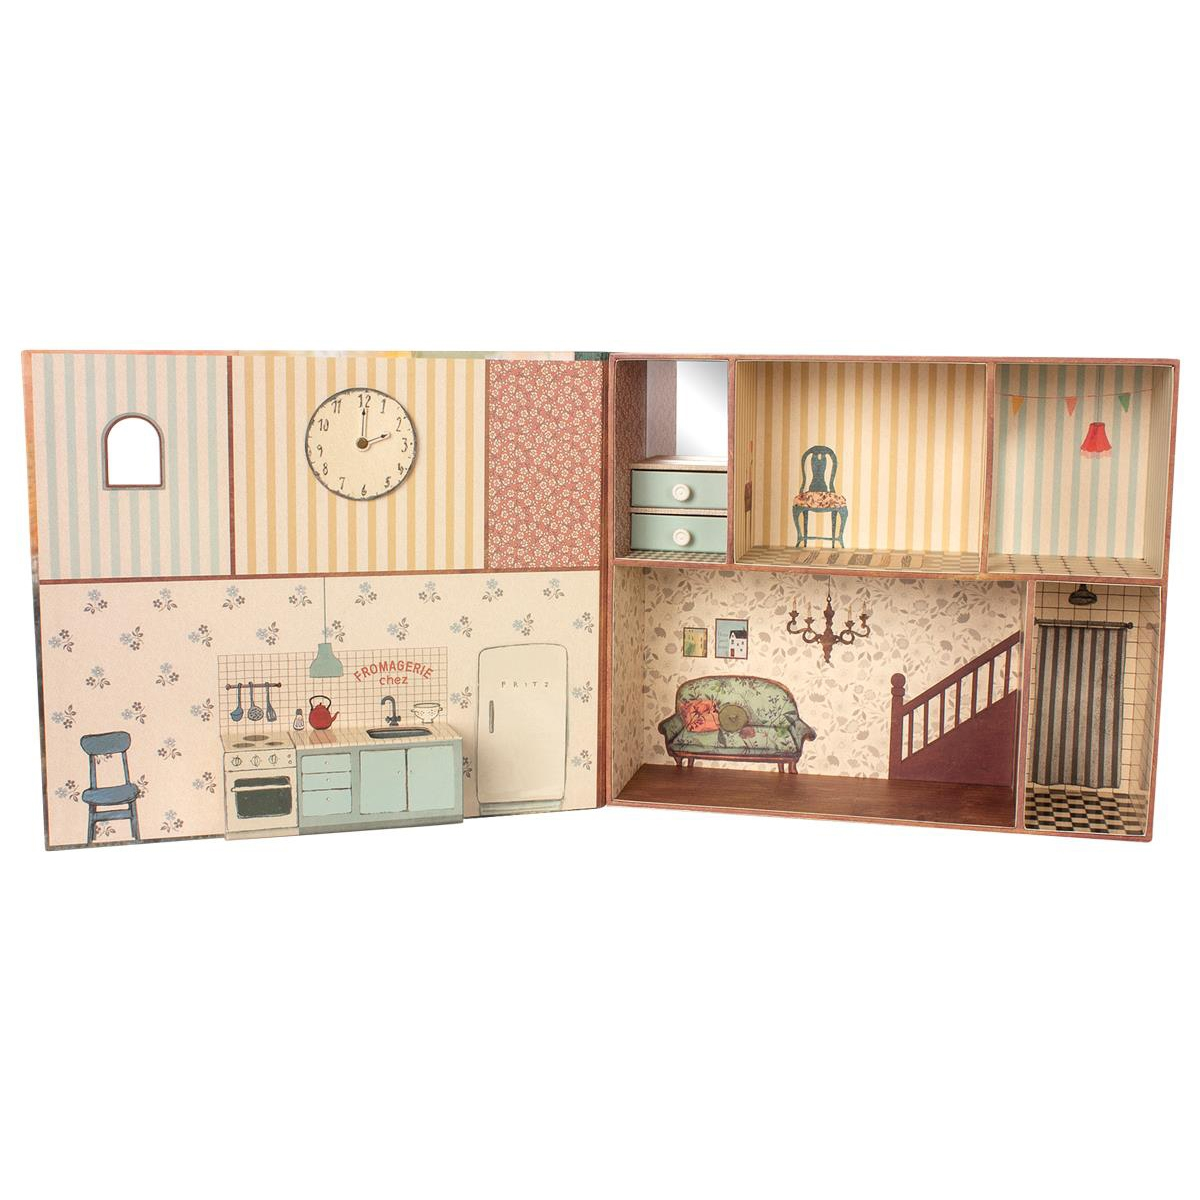 779cdc06b47 Mouse Book House Fra Maileg - Butik Unik Thisted